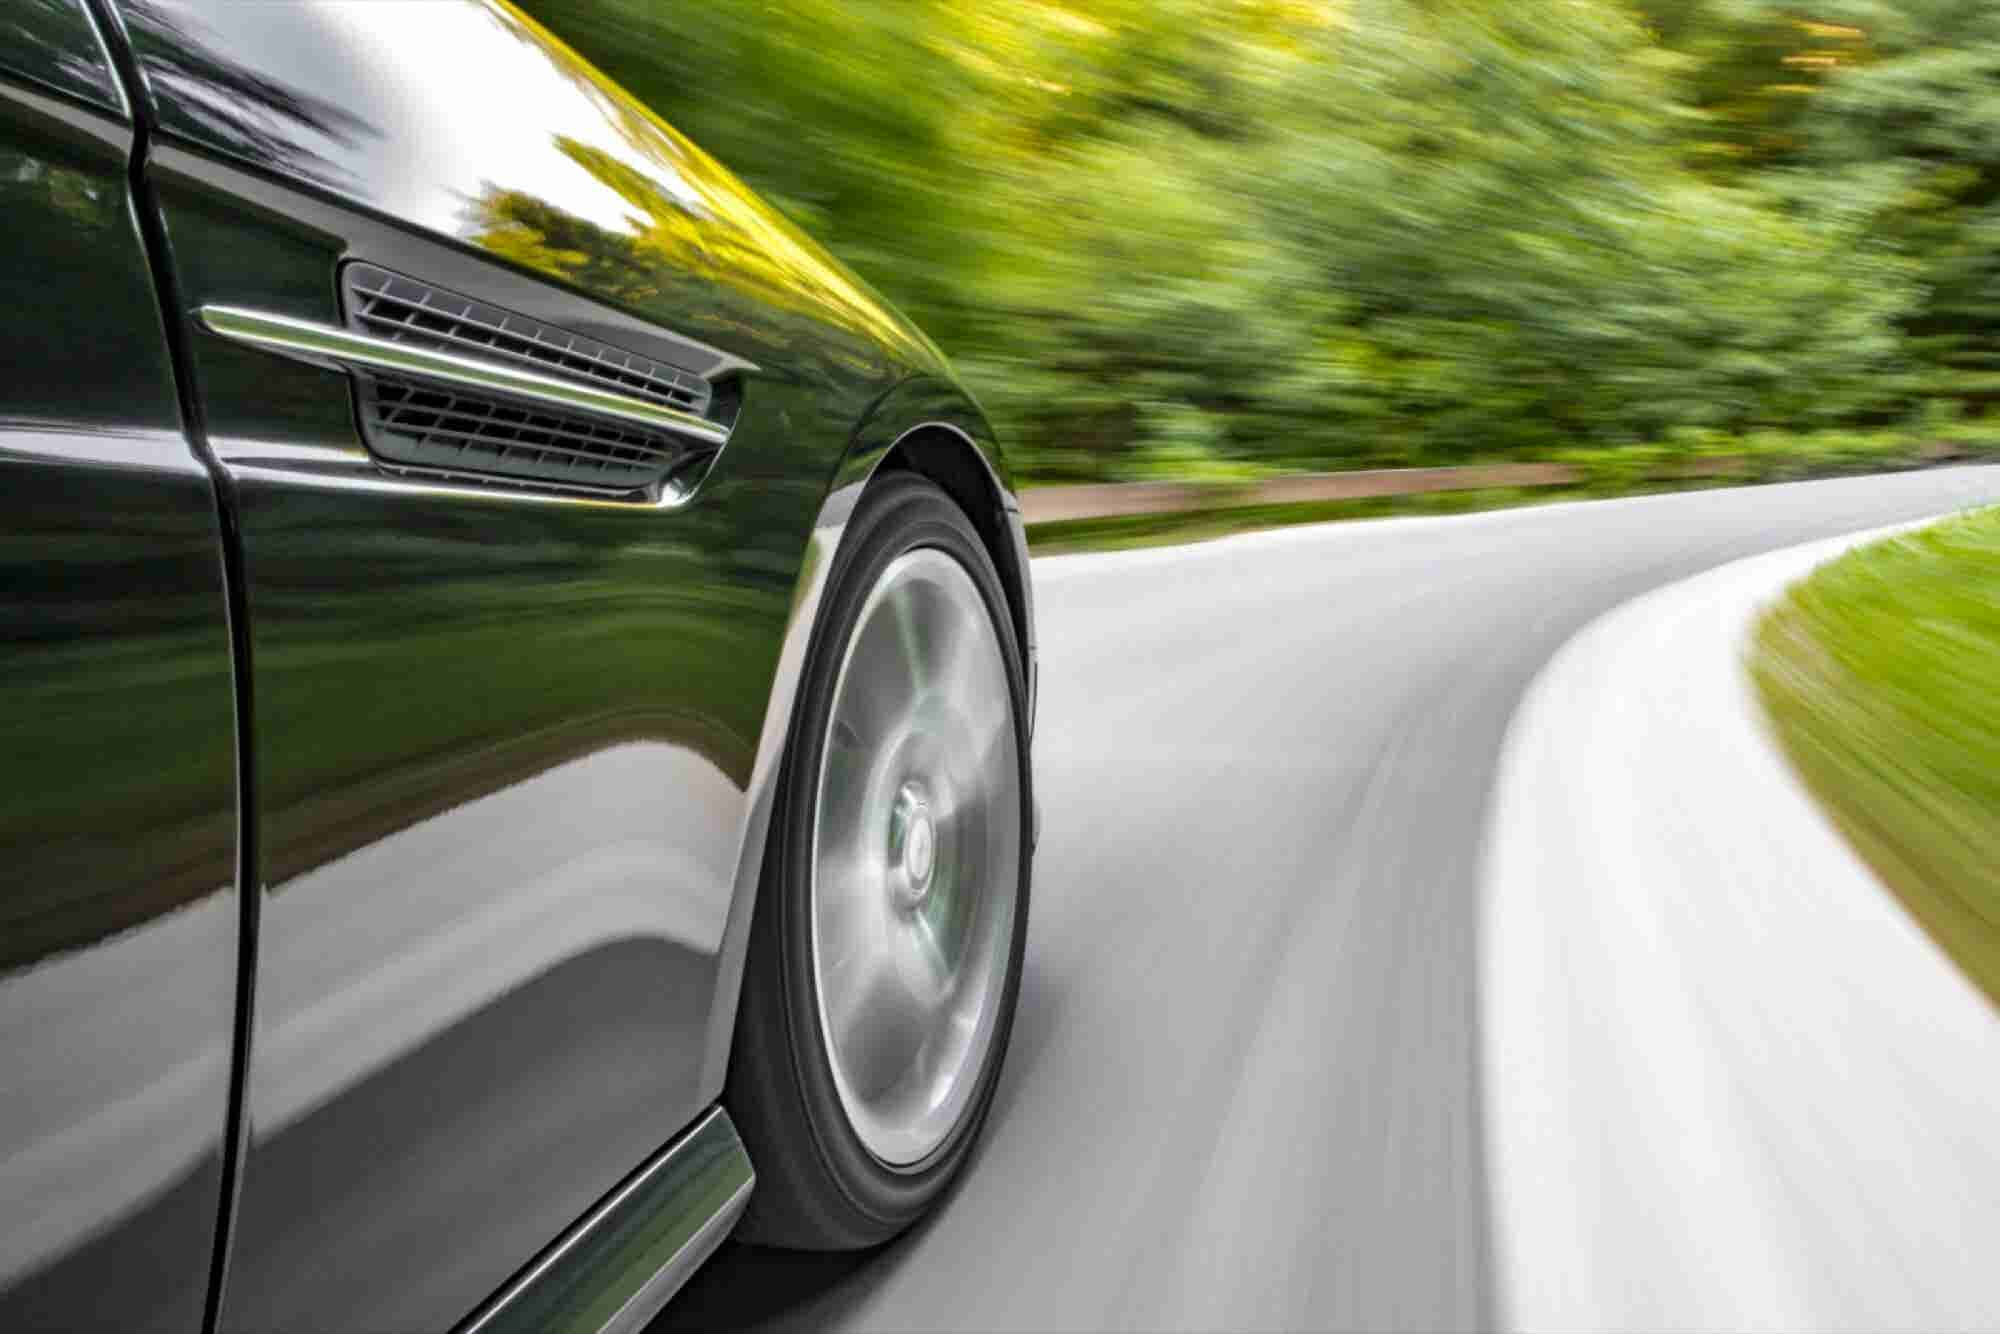 Road Risks: What You Need to Know Before Your Business Gets Behind the Wheel